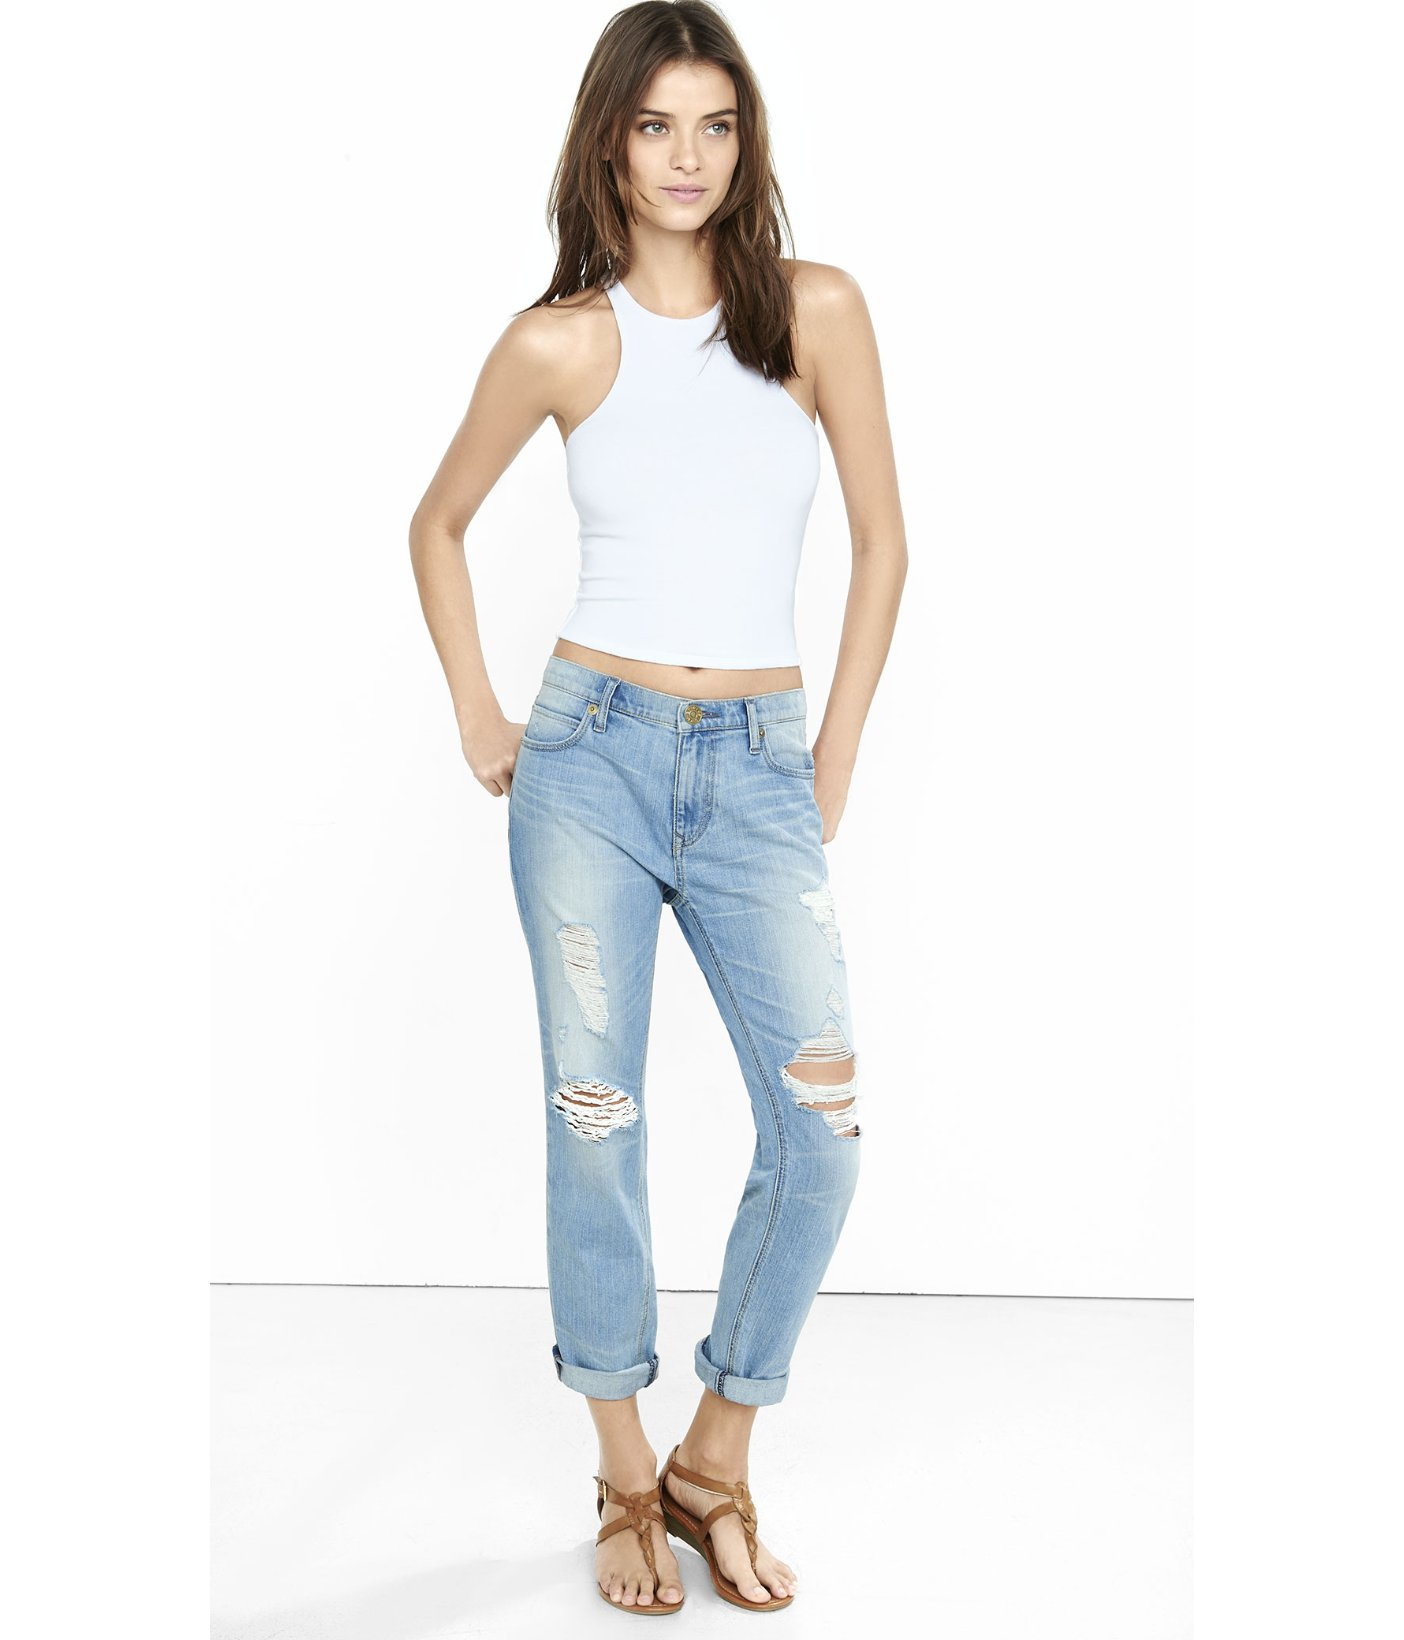 dcaec806ab Express One Eleven Cutaway Cropped Tank in White - Lyst